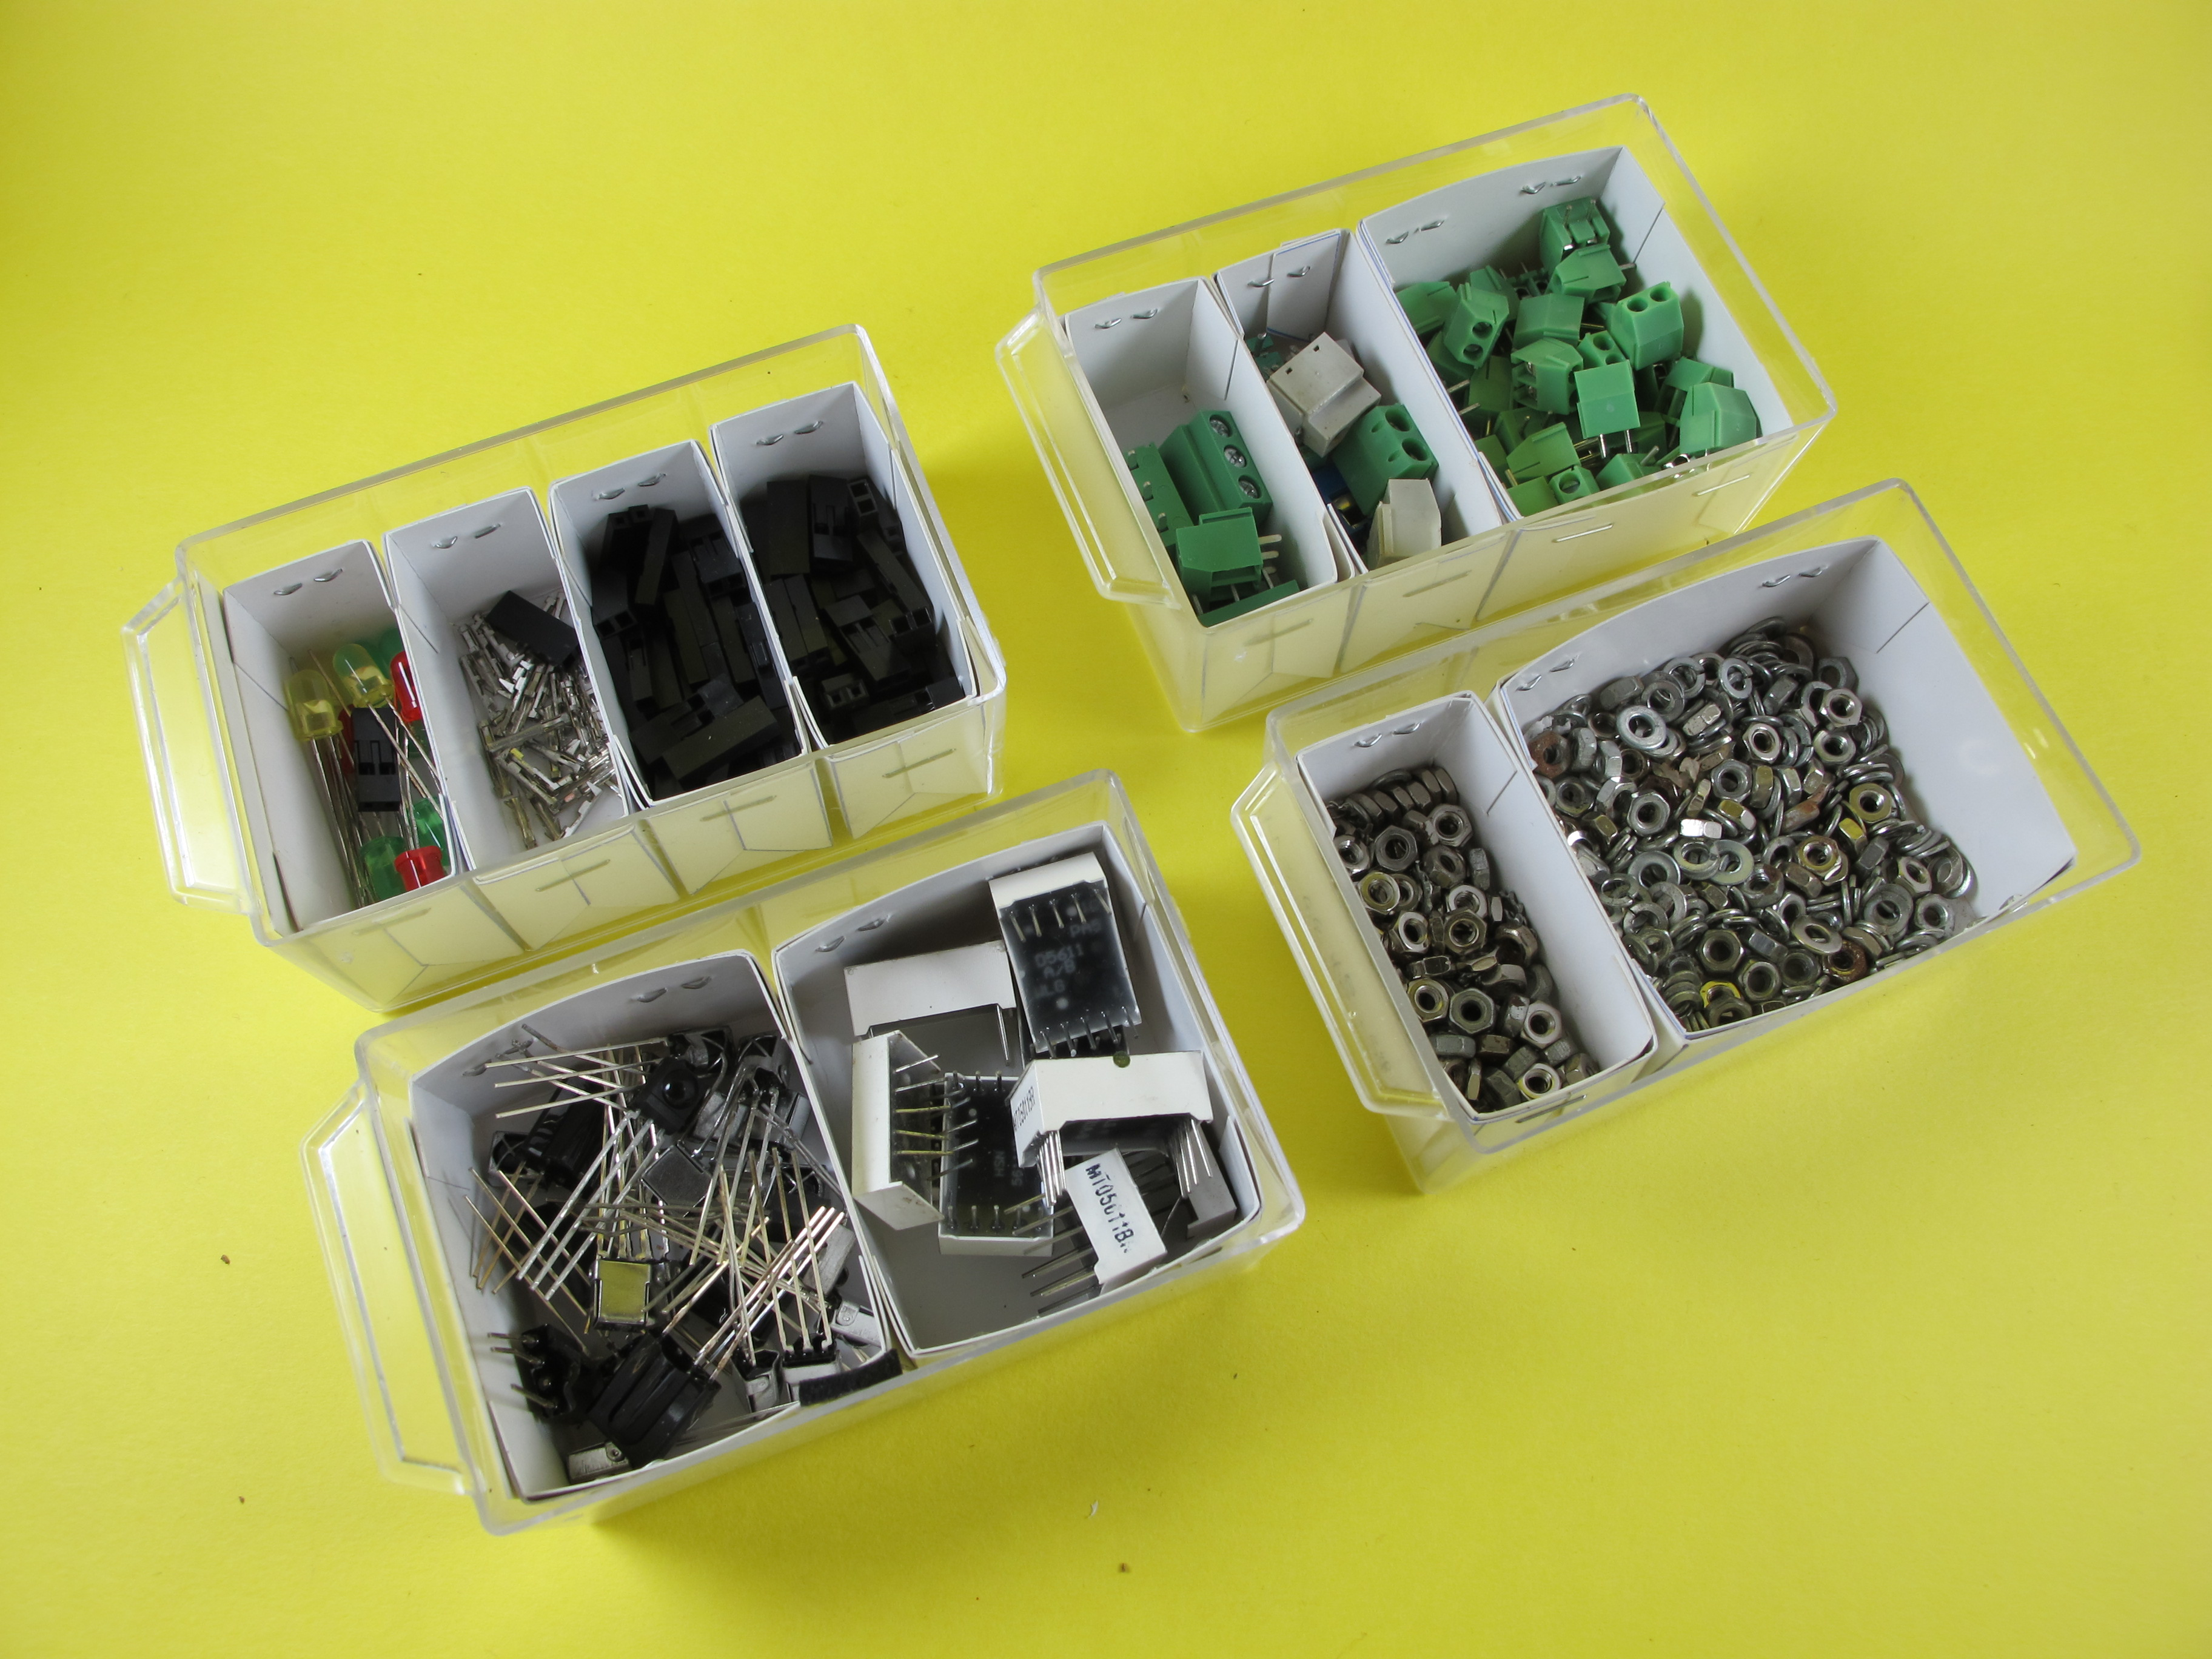 Modify the Electronic Components Organizer